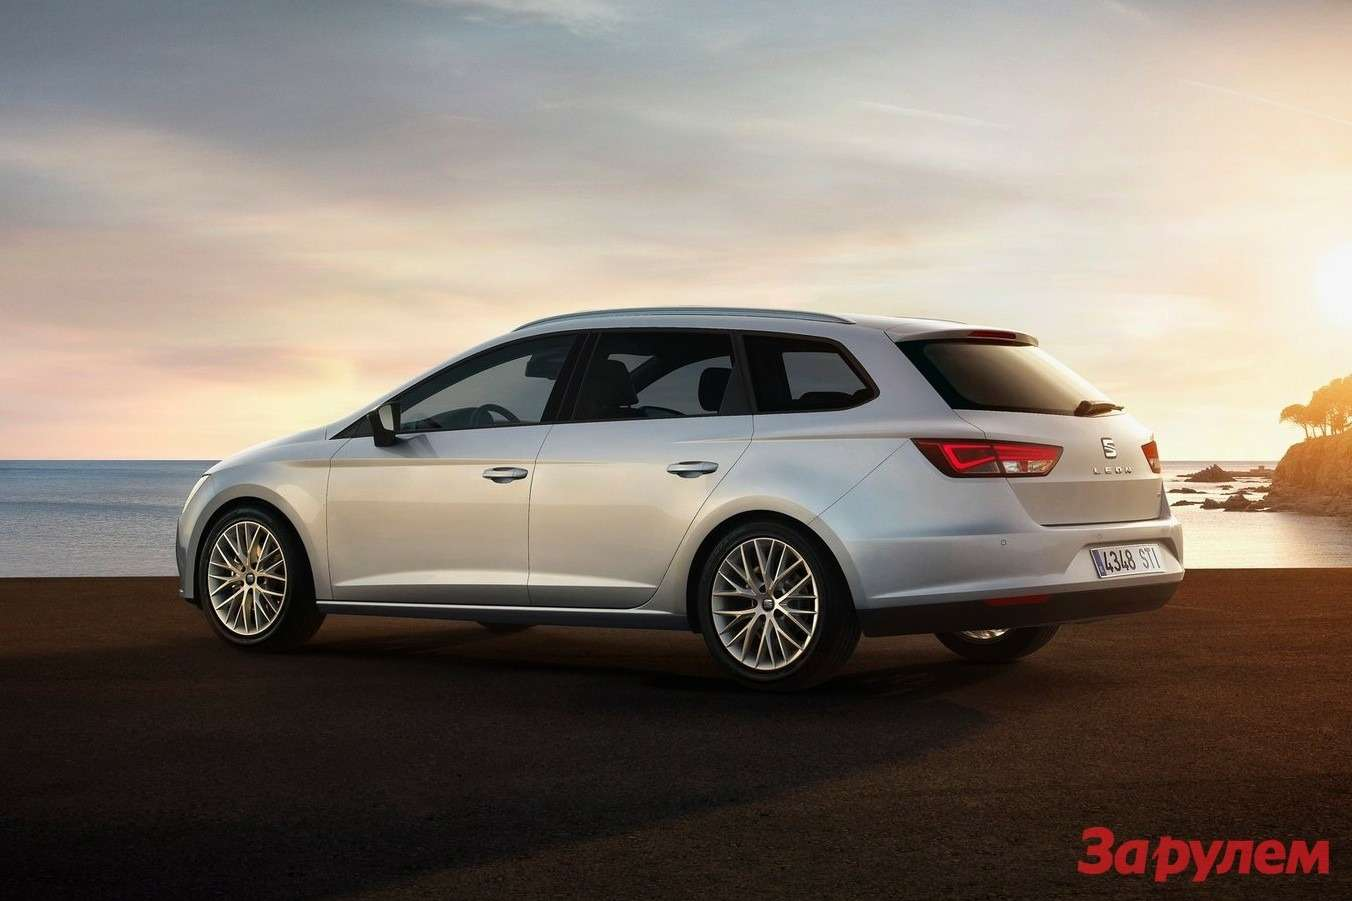 Seat Leon ST 2014 1600x1200 wallpaper 05